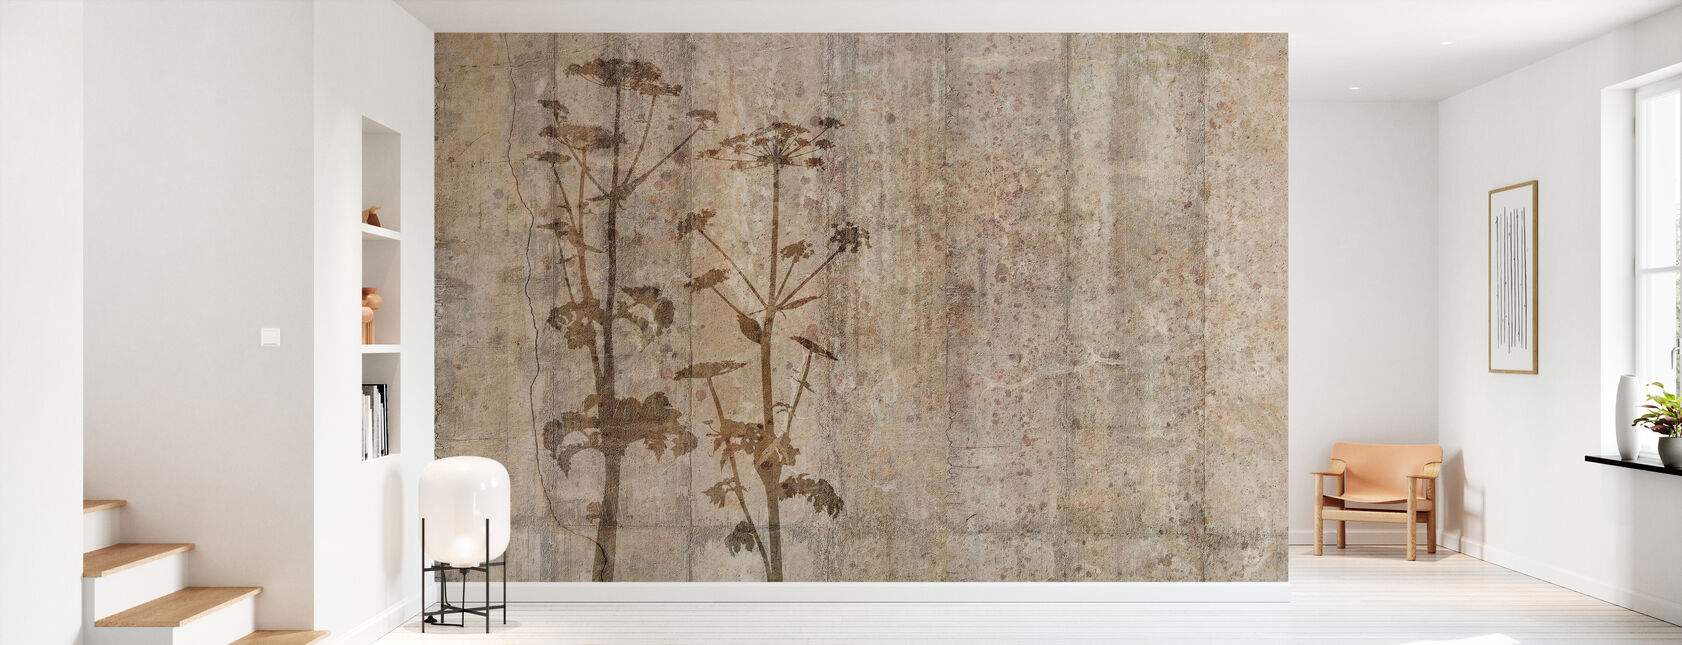 Giant Hogweed with Concrete Wall - Wallpaper - Hallway